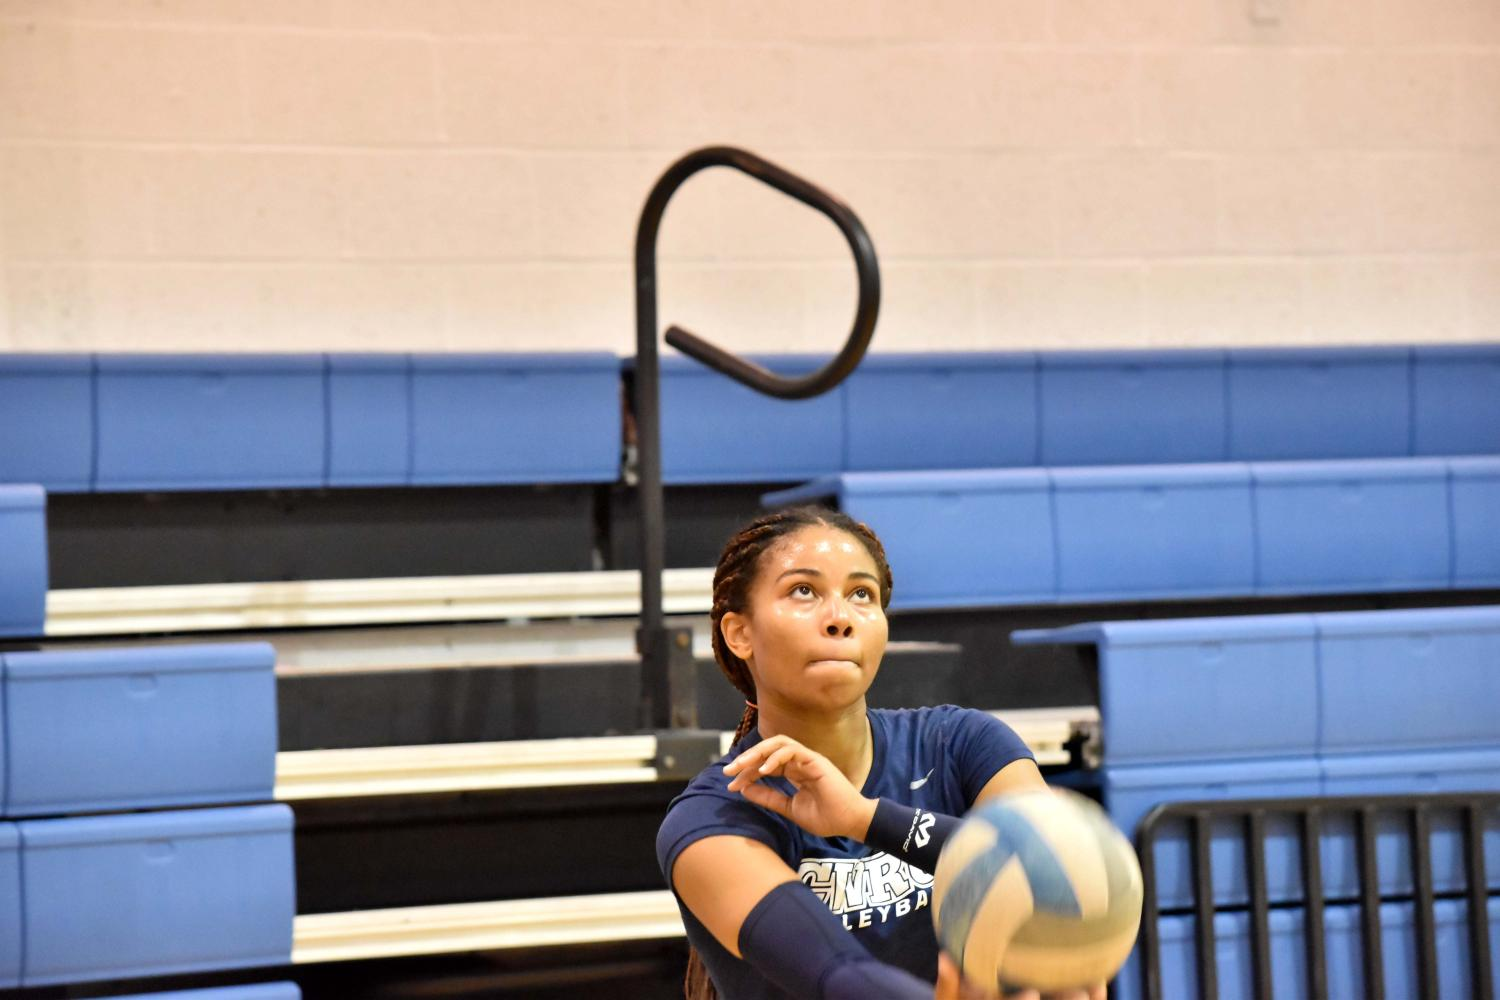 With a solid mix of personalities, the Spartan volleyball team balances each individual's strengths and weaknesses very well.